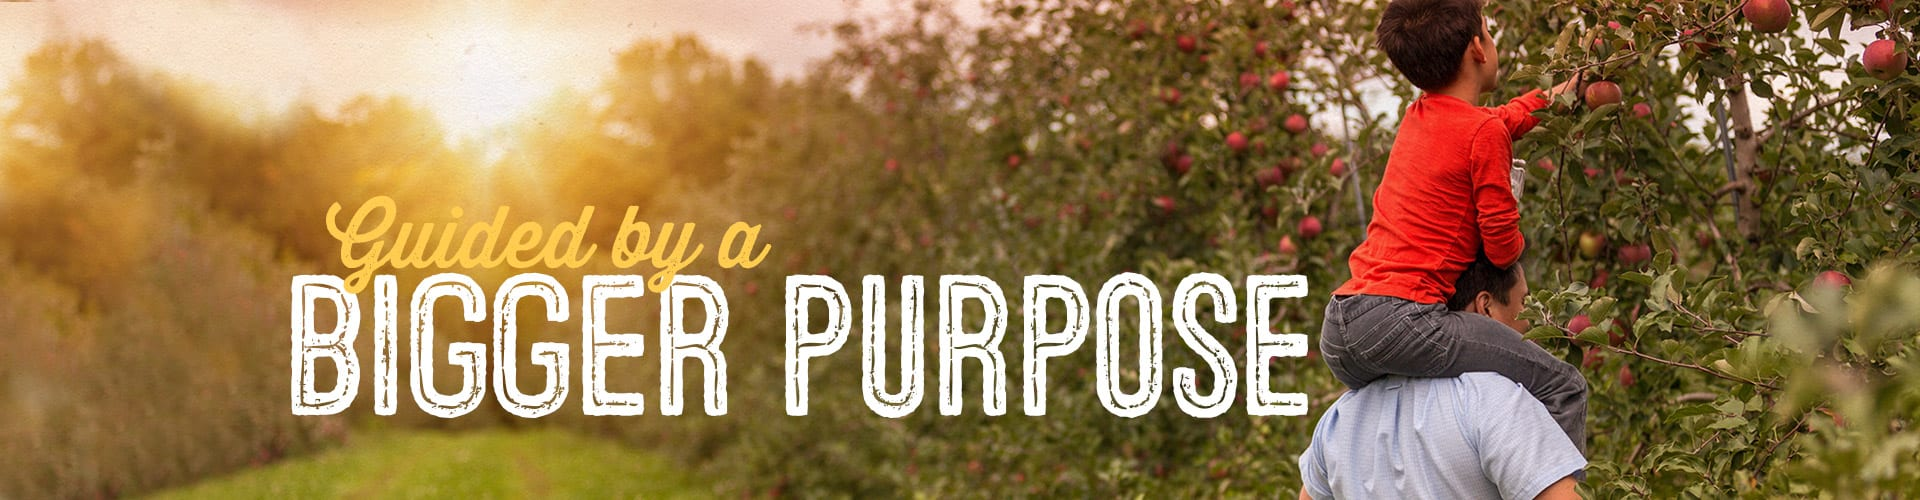 Garden of Life Guided by a Bigger Purpose